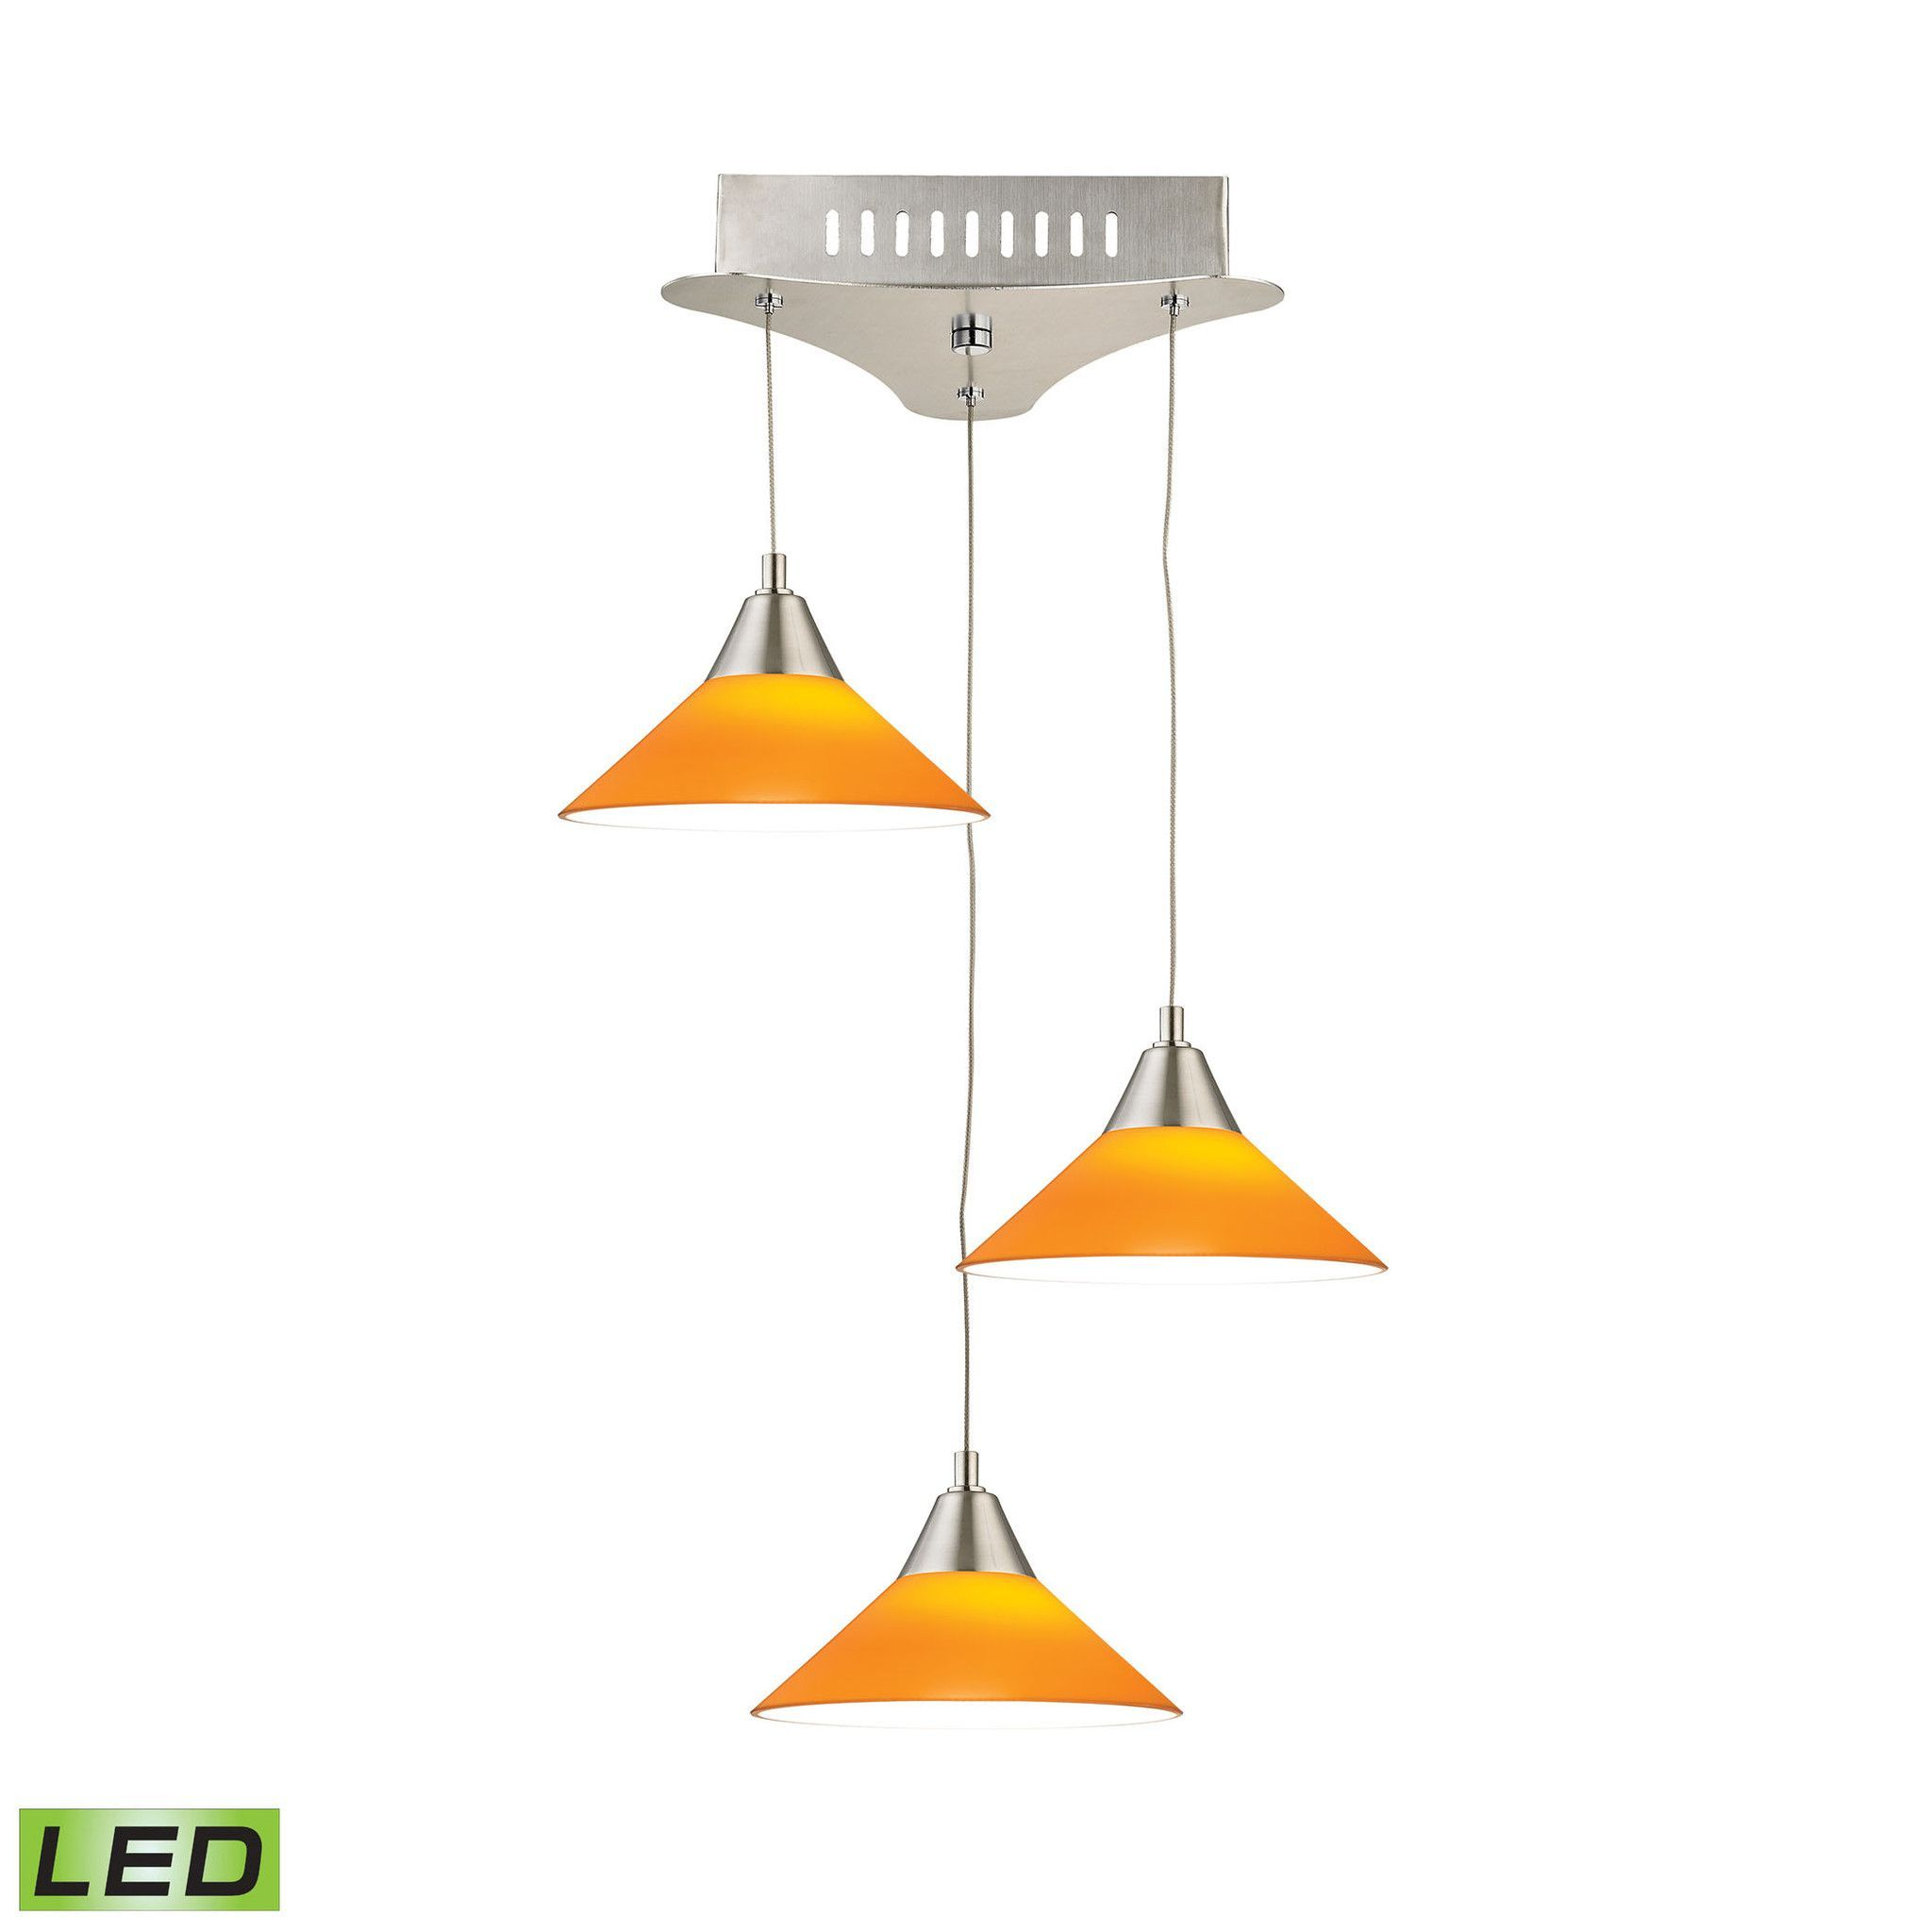 Alico cono light led pendant in satin nickel with yellow glass